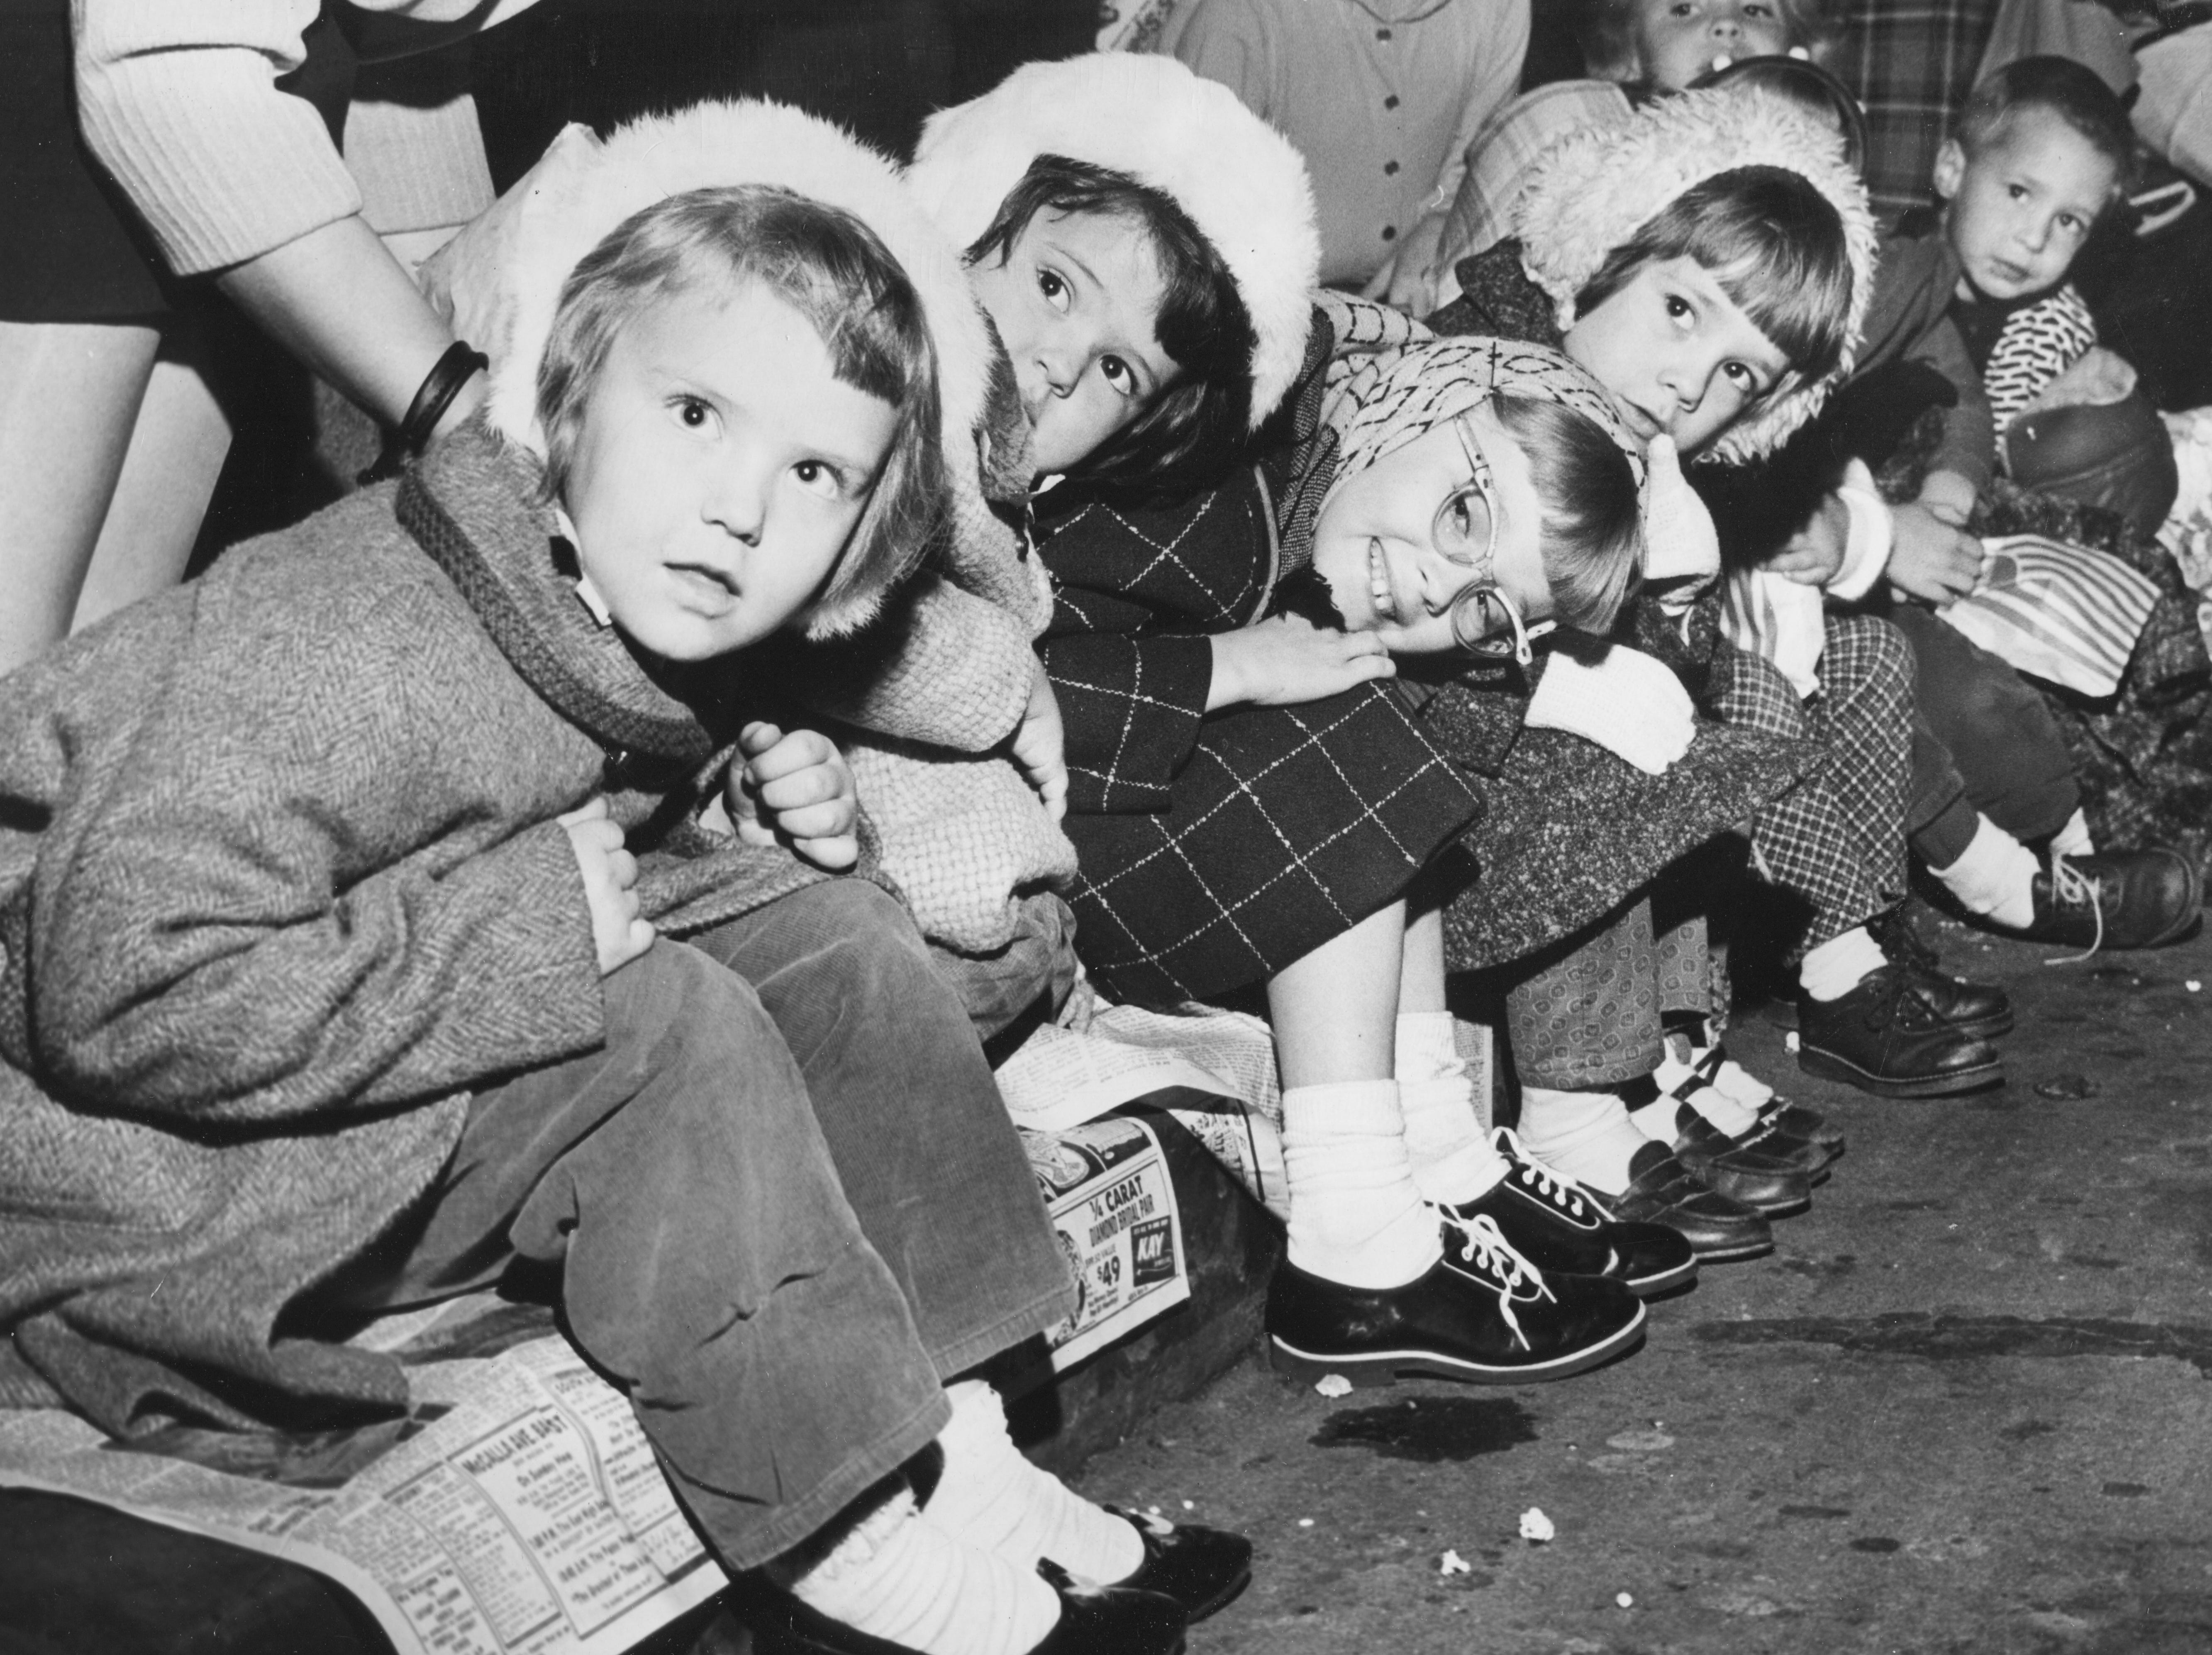 Debbie Cupp, 5, left, Teresa Cupp, 3, Vivian Mitchell, 8, and Vicky Atchley, 5, wait for Santa during the Christmas parade Nov. 26, 1961, on Gay Street.